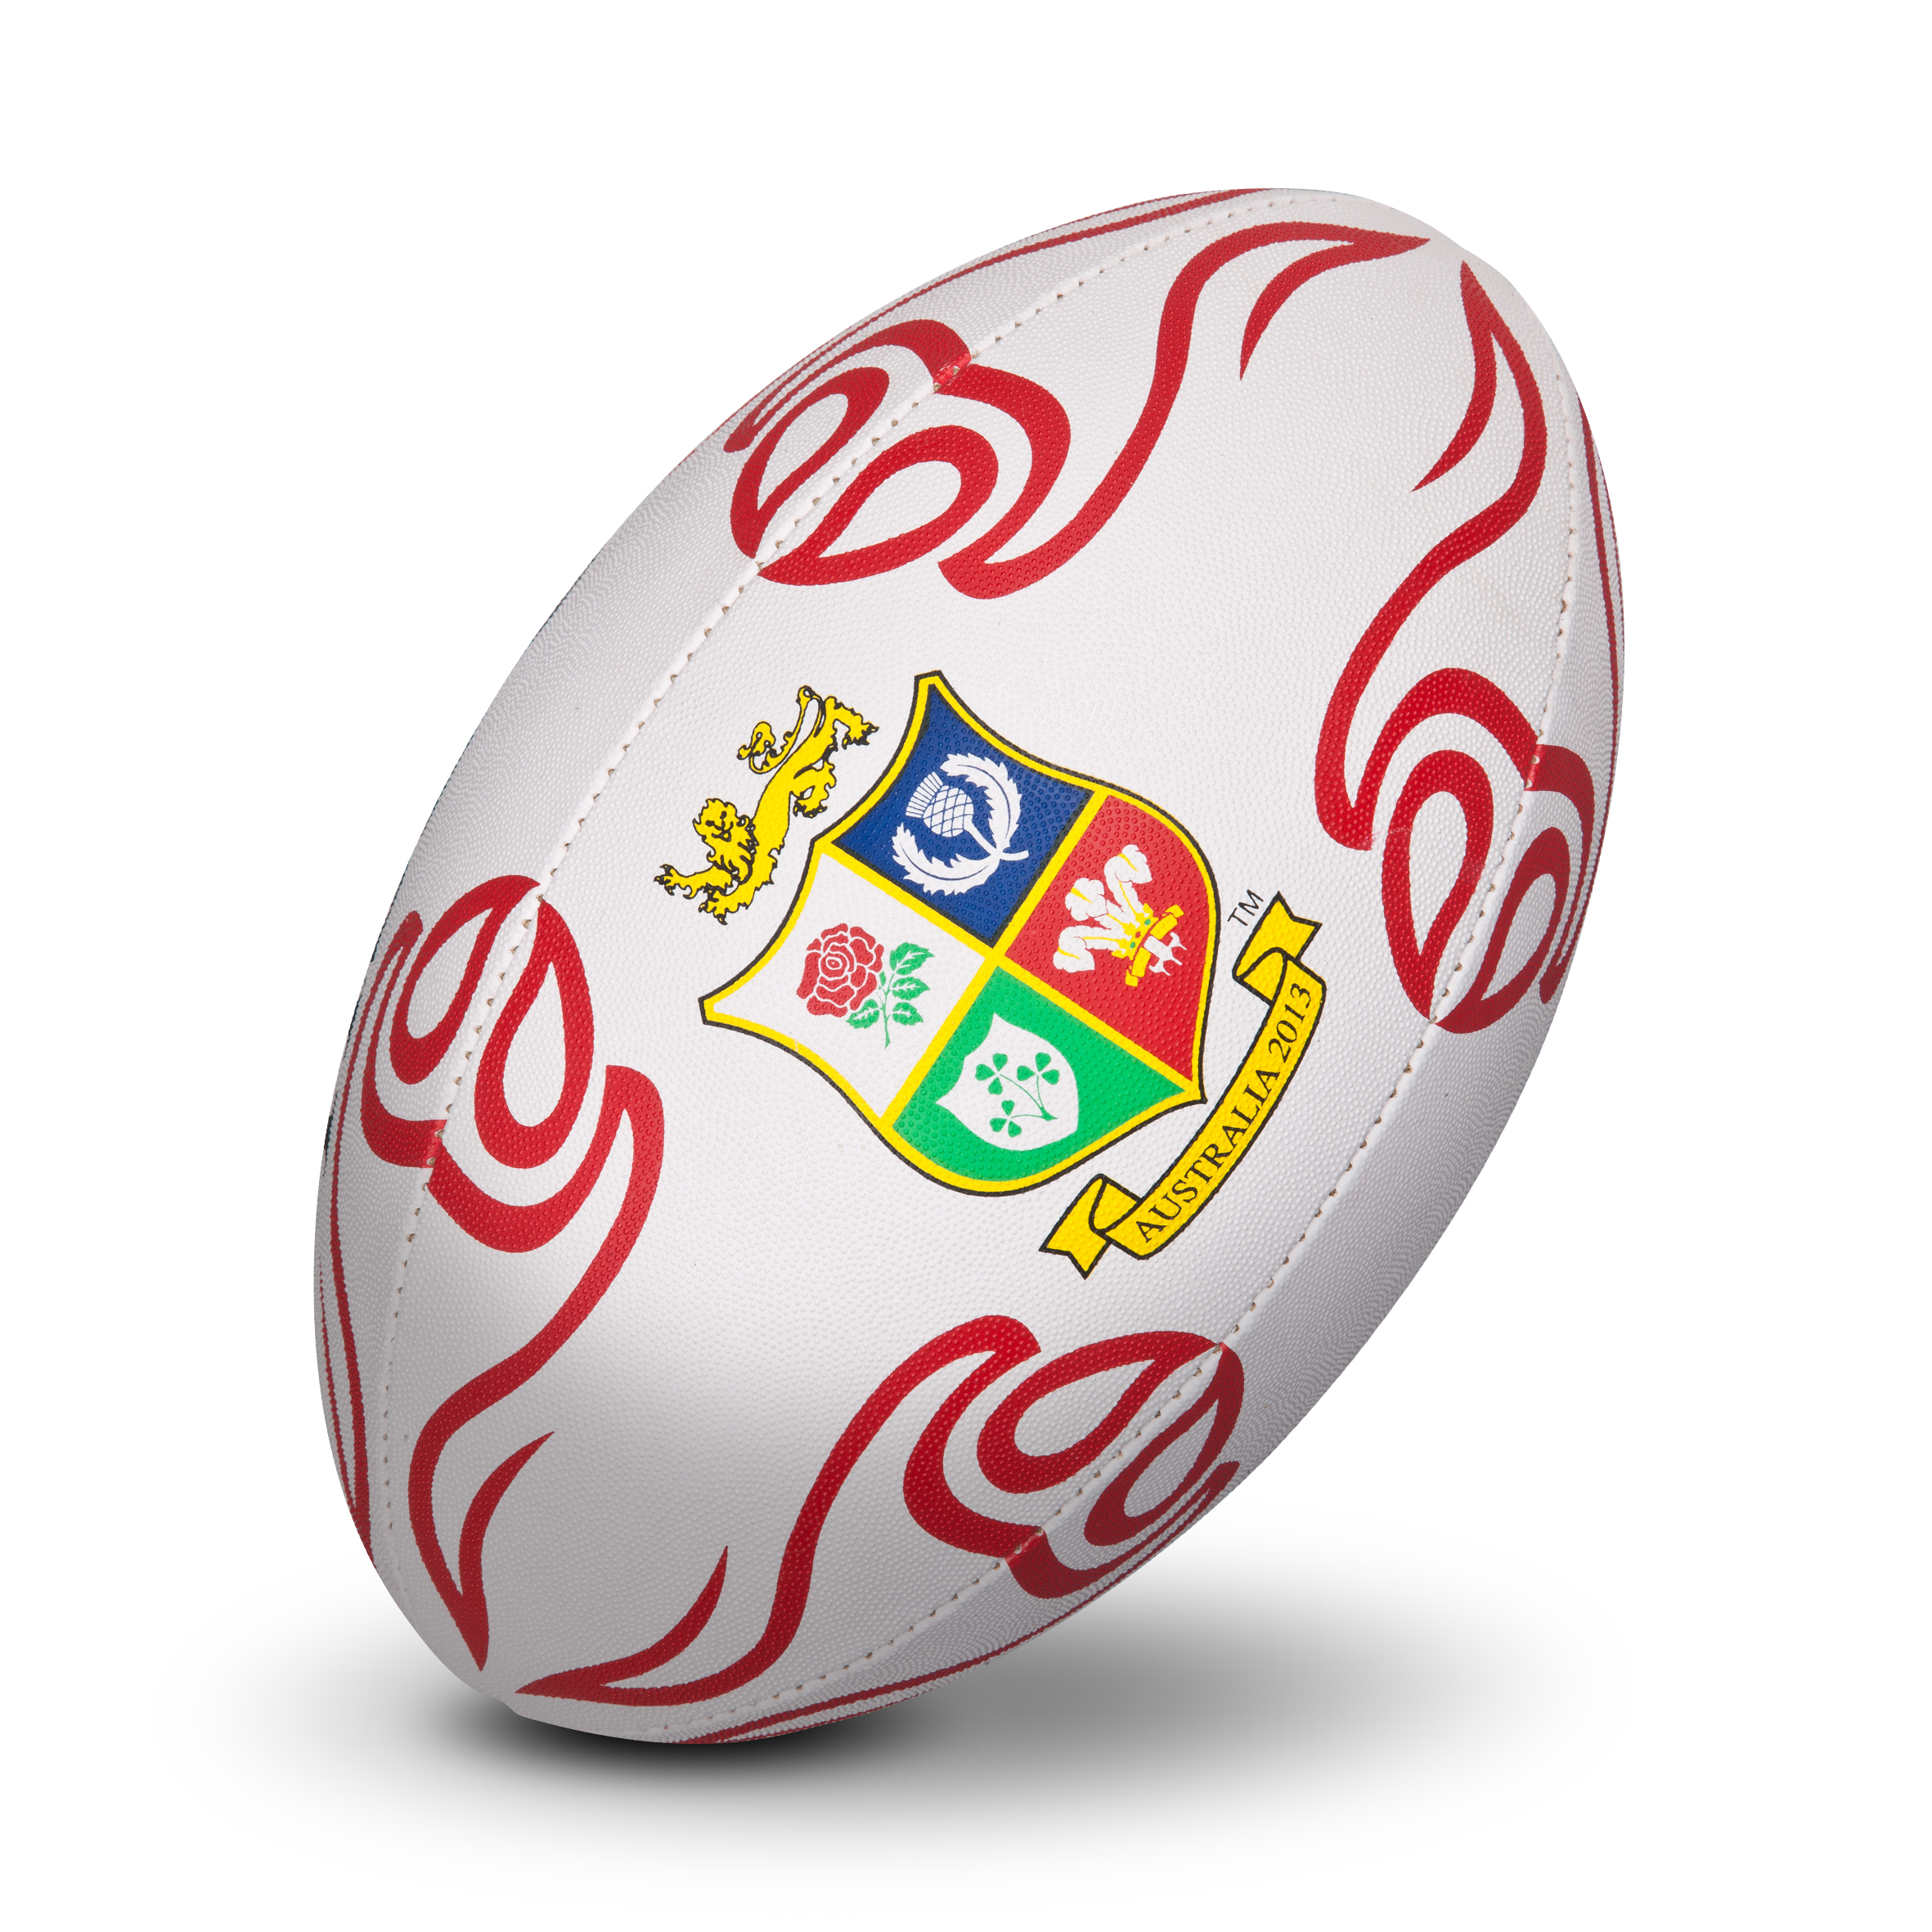 British & Irish Lions Supporters Rugby Ball - White/Red